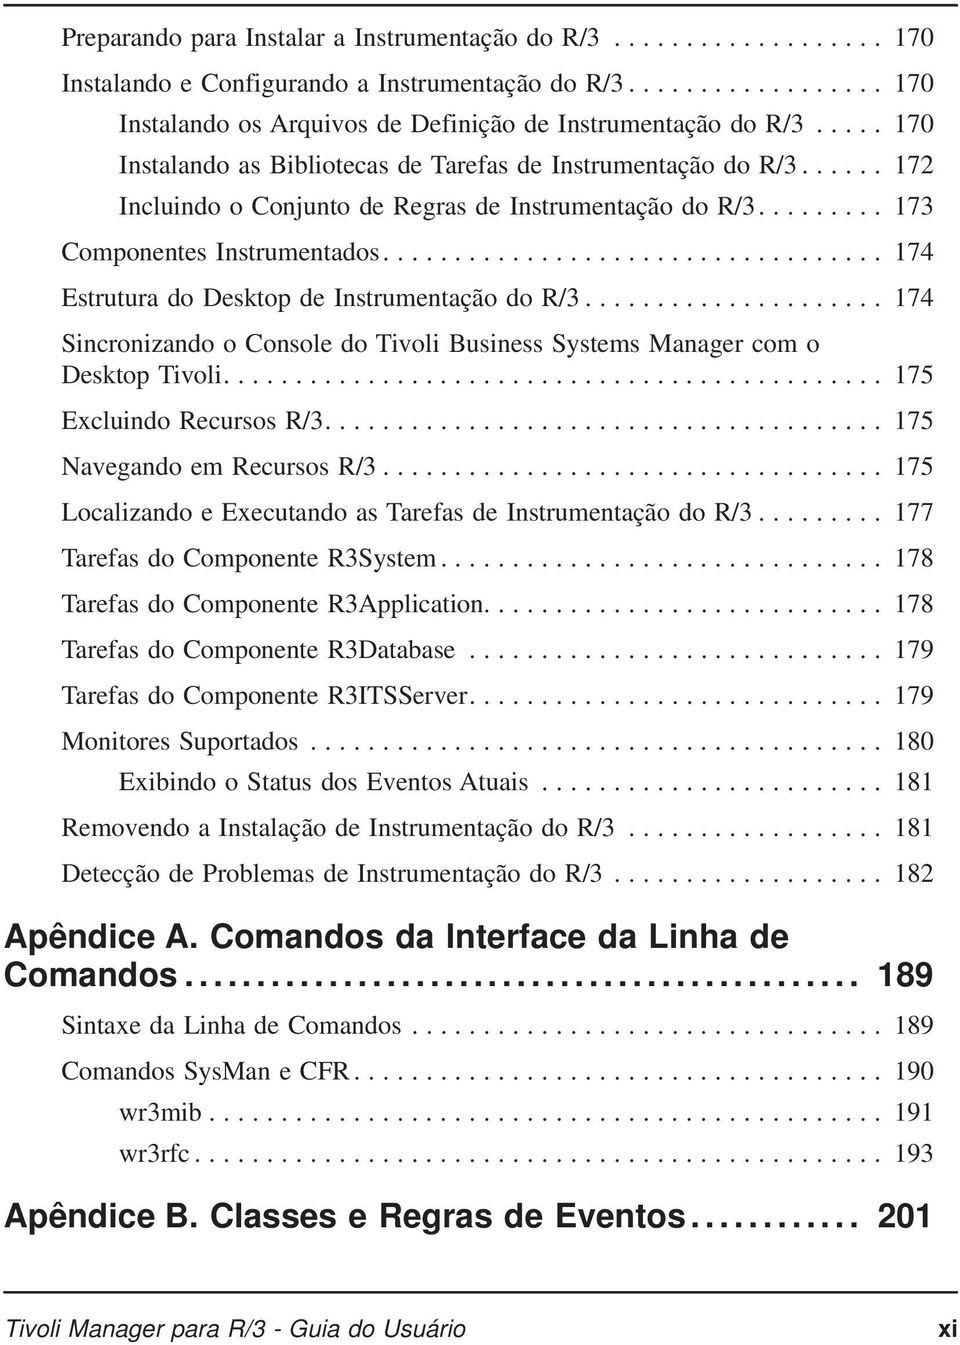 ... 174 Estrutura do Desktop de InstrumentaçãodoR/3... 174 Sincronizando o Console do Tivoli Business Systems Manager com o Desktop Tivoli.... 175 Excluindo Recursos R/3.